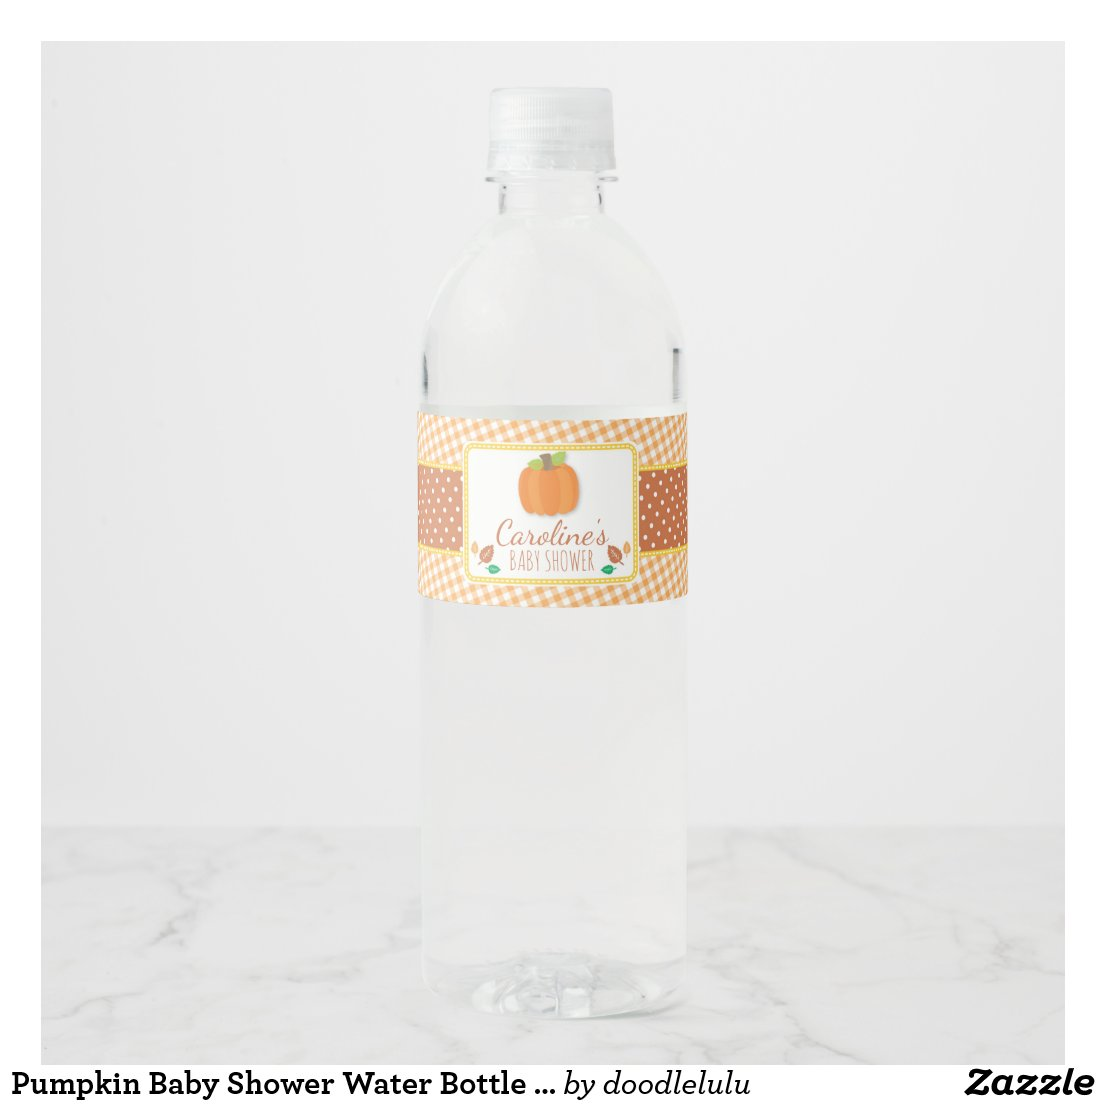 Pumpkin Baby Shower Water Bottle Label